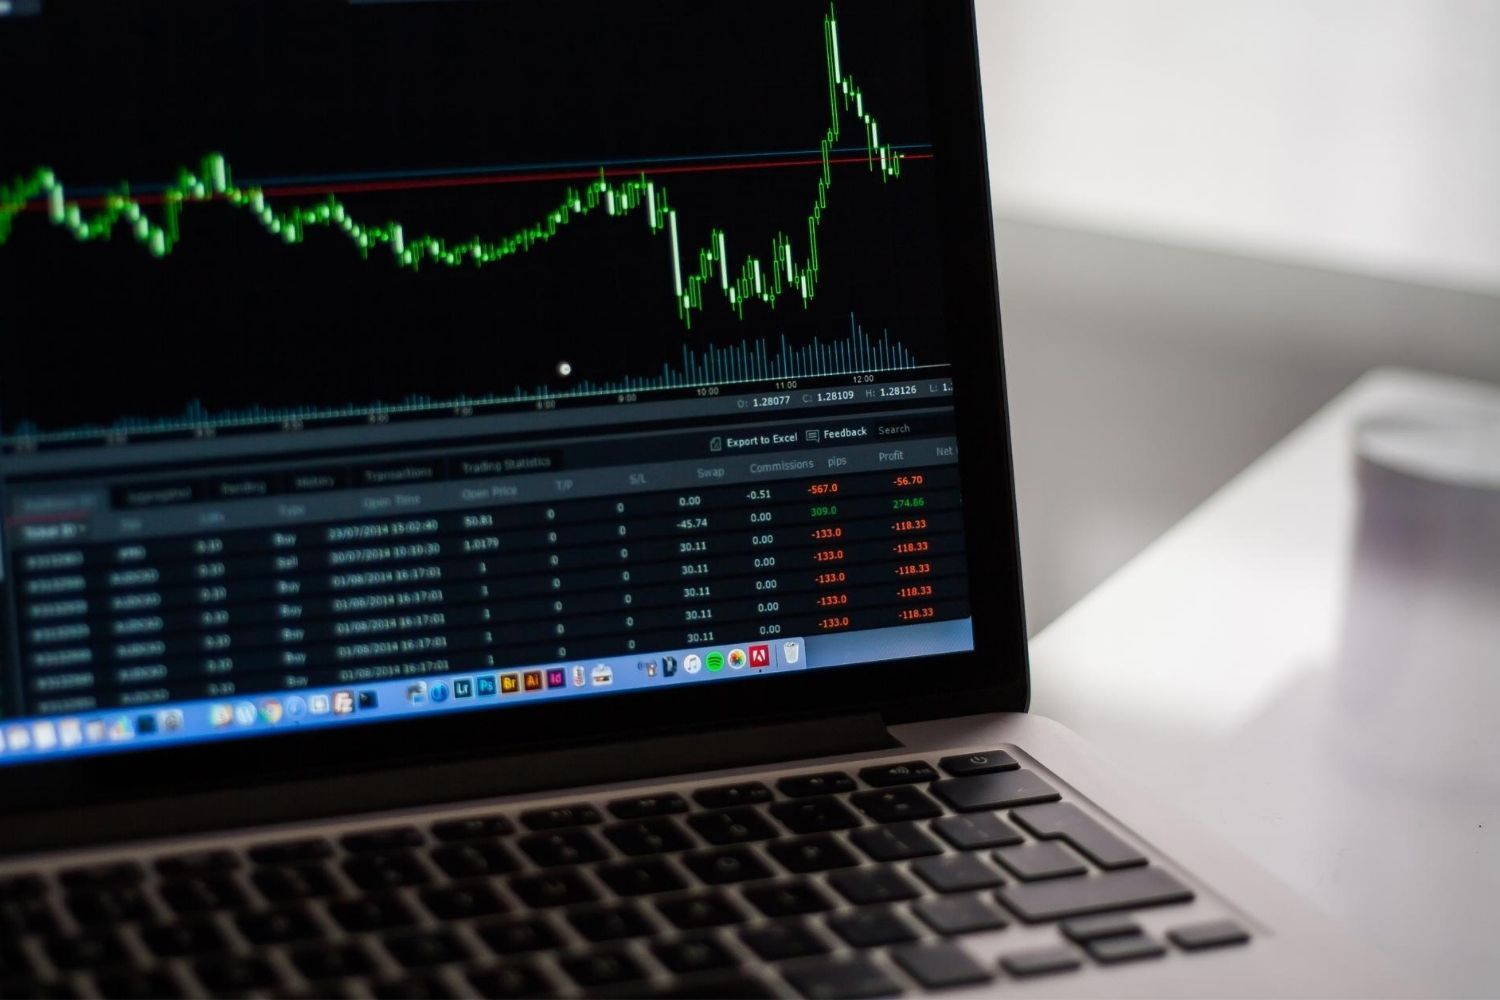 Create your trading account, trade your first stock, watchlists, price alerts, technical analysis basics and tons more